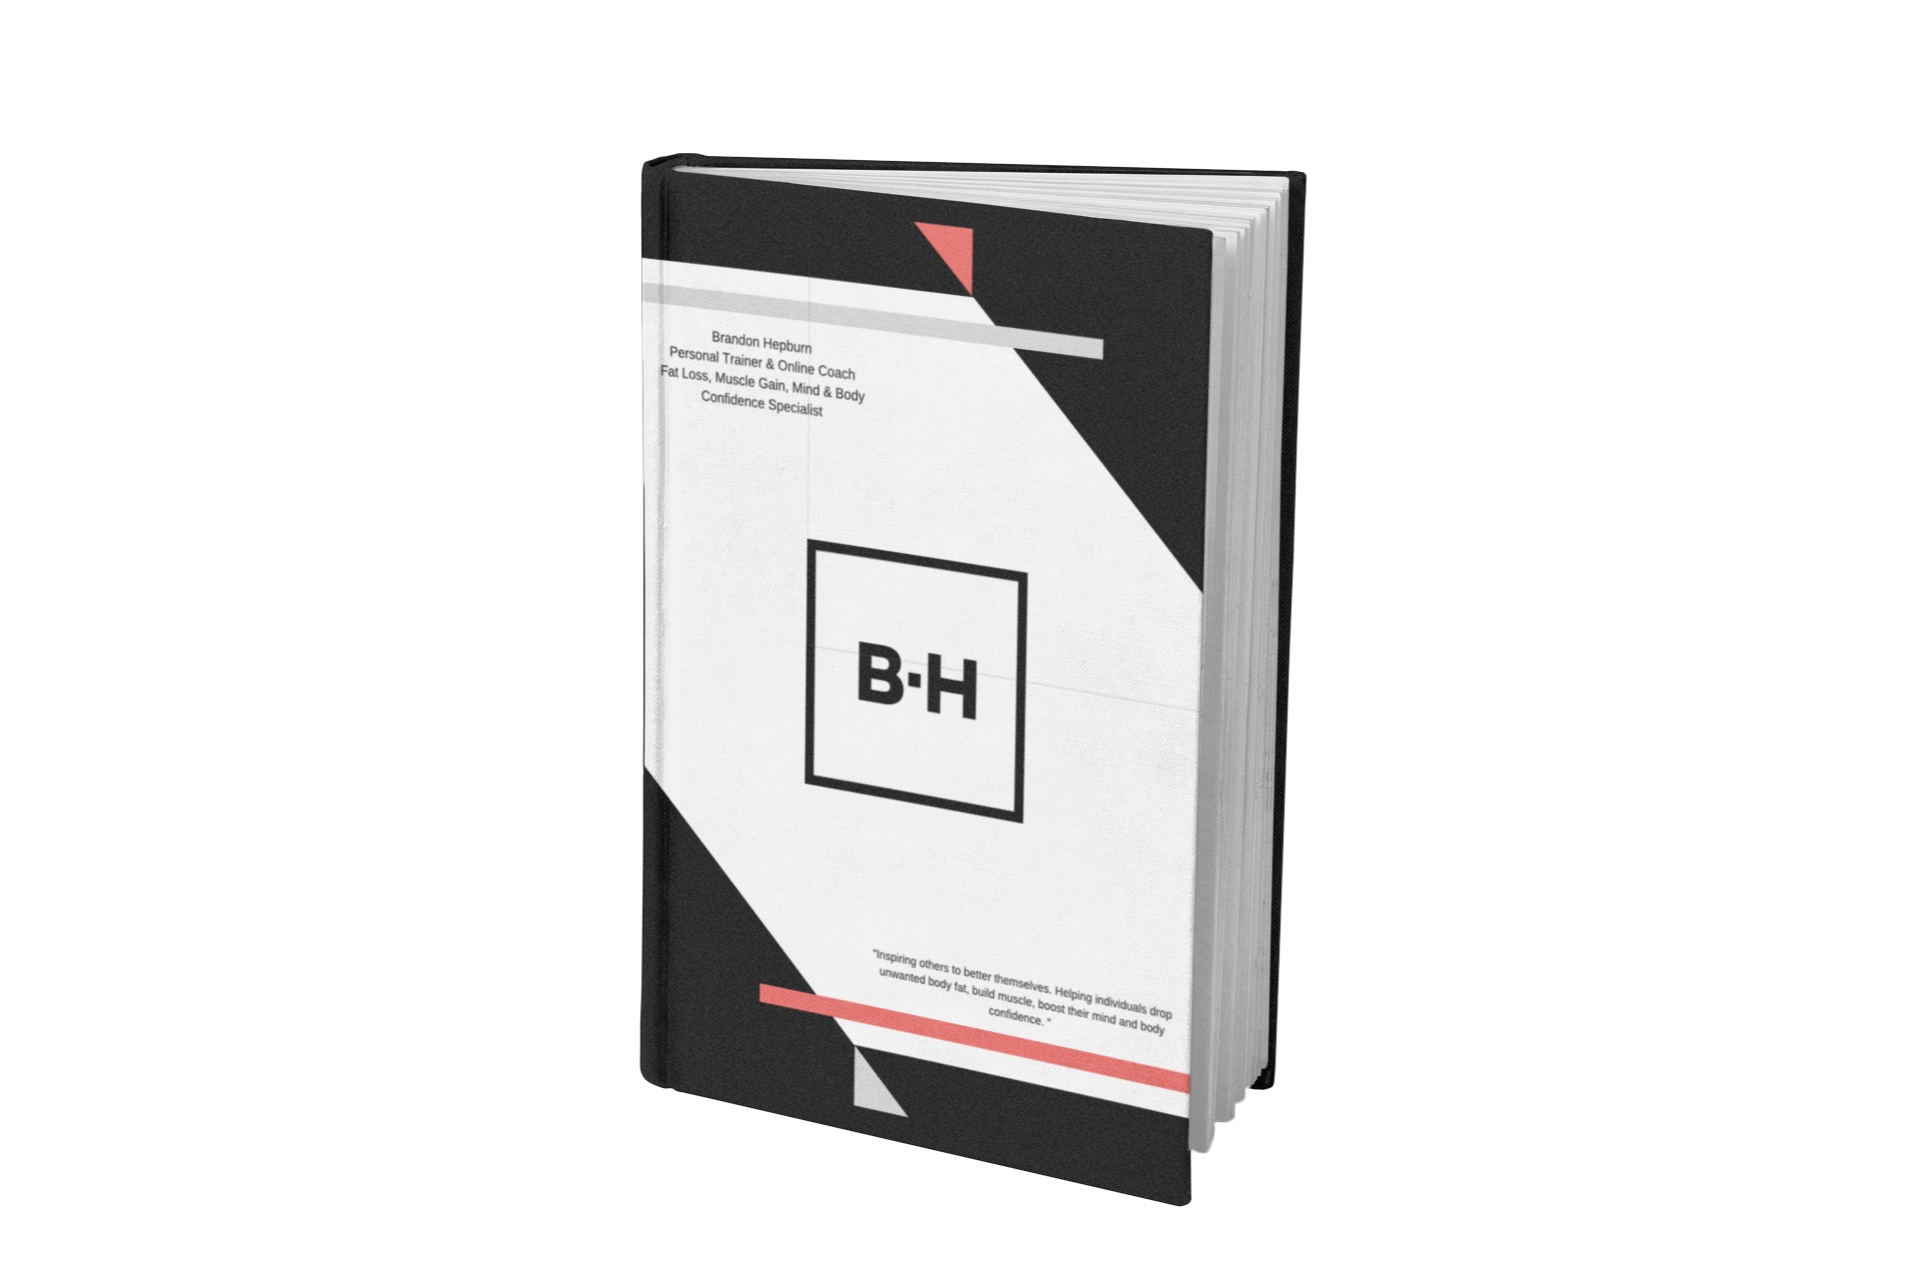 hardcover-ebook-mockup-a9865.jpg